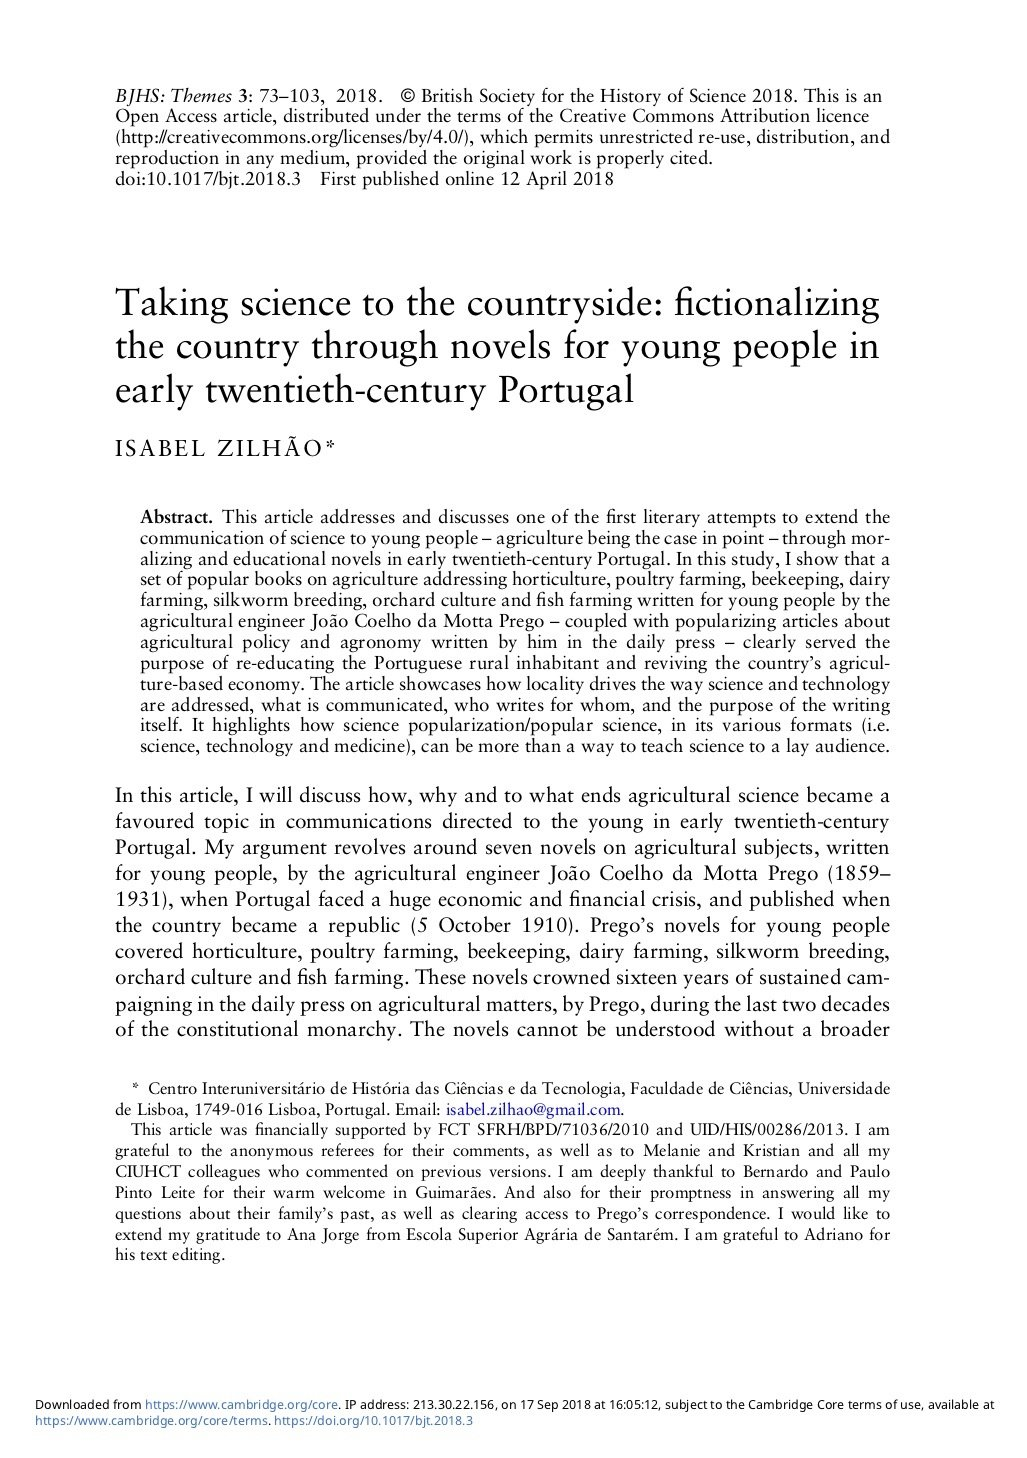 Taking science to the countryside: fictionalizing the country through novels for young people in early twentieth-century Portugal, Capa